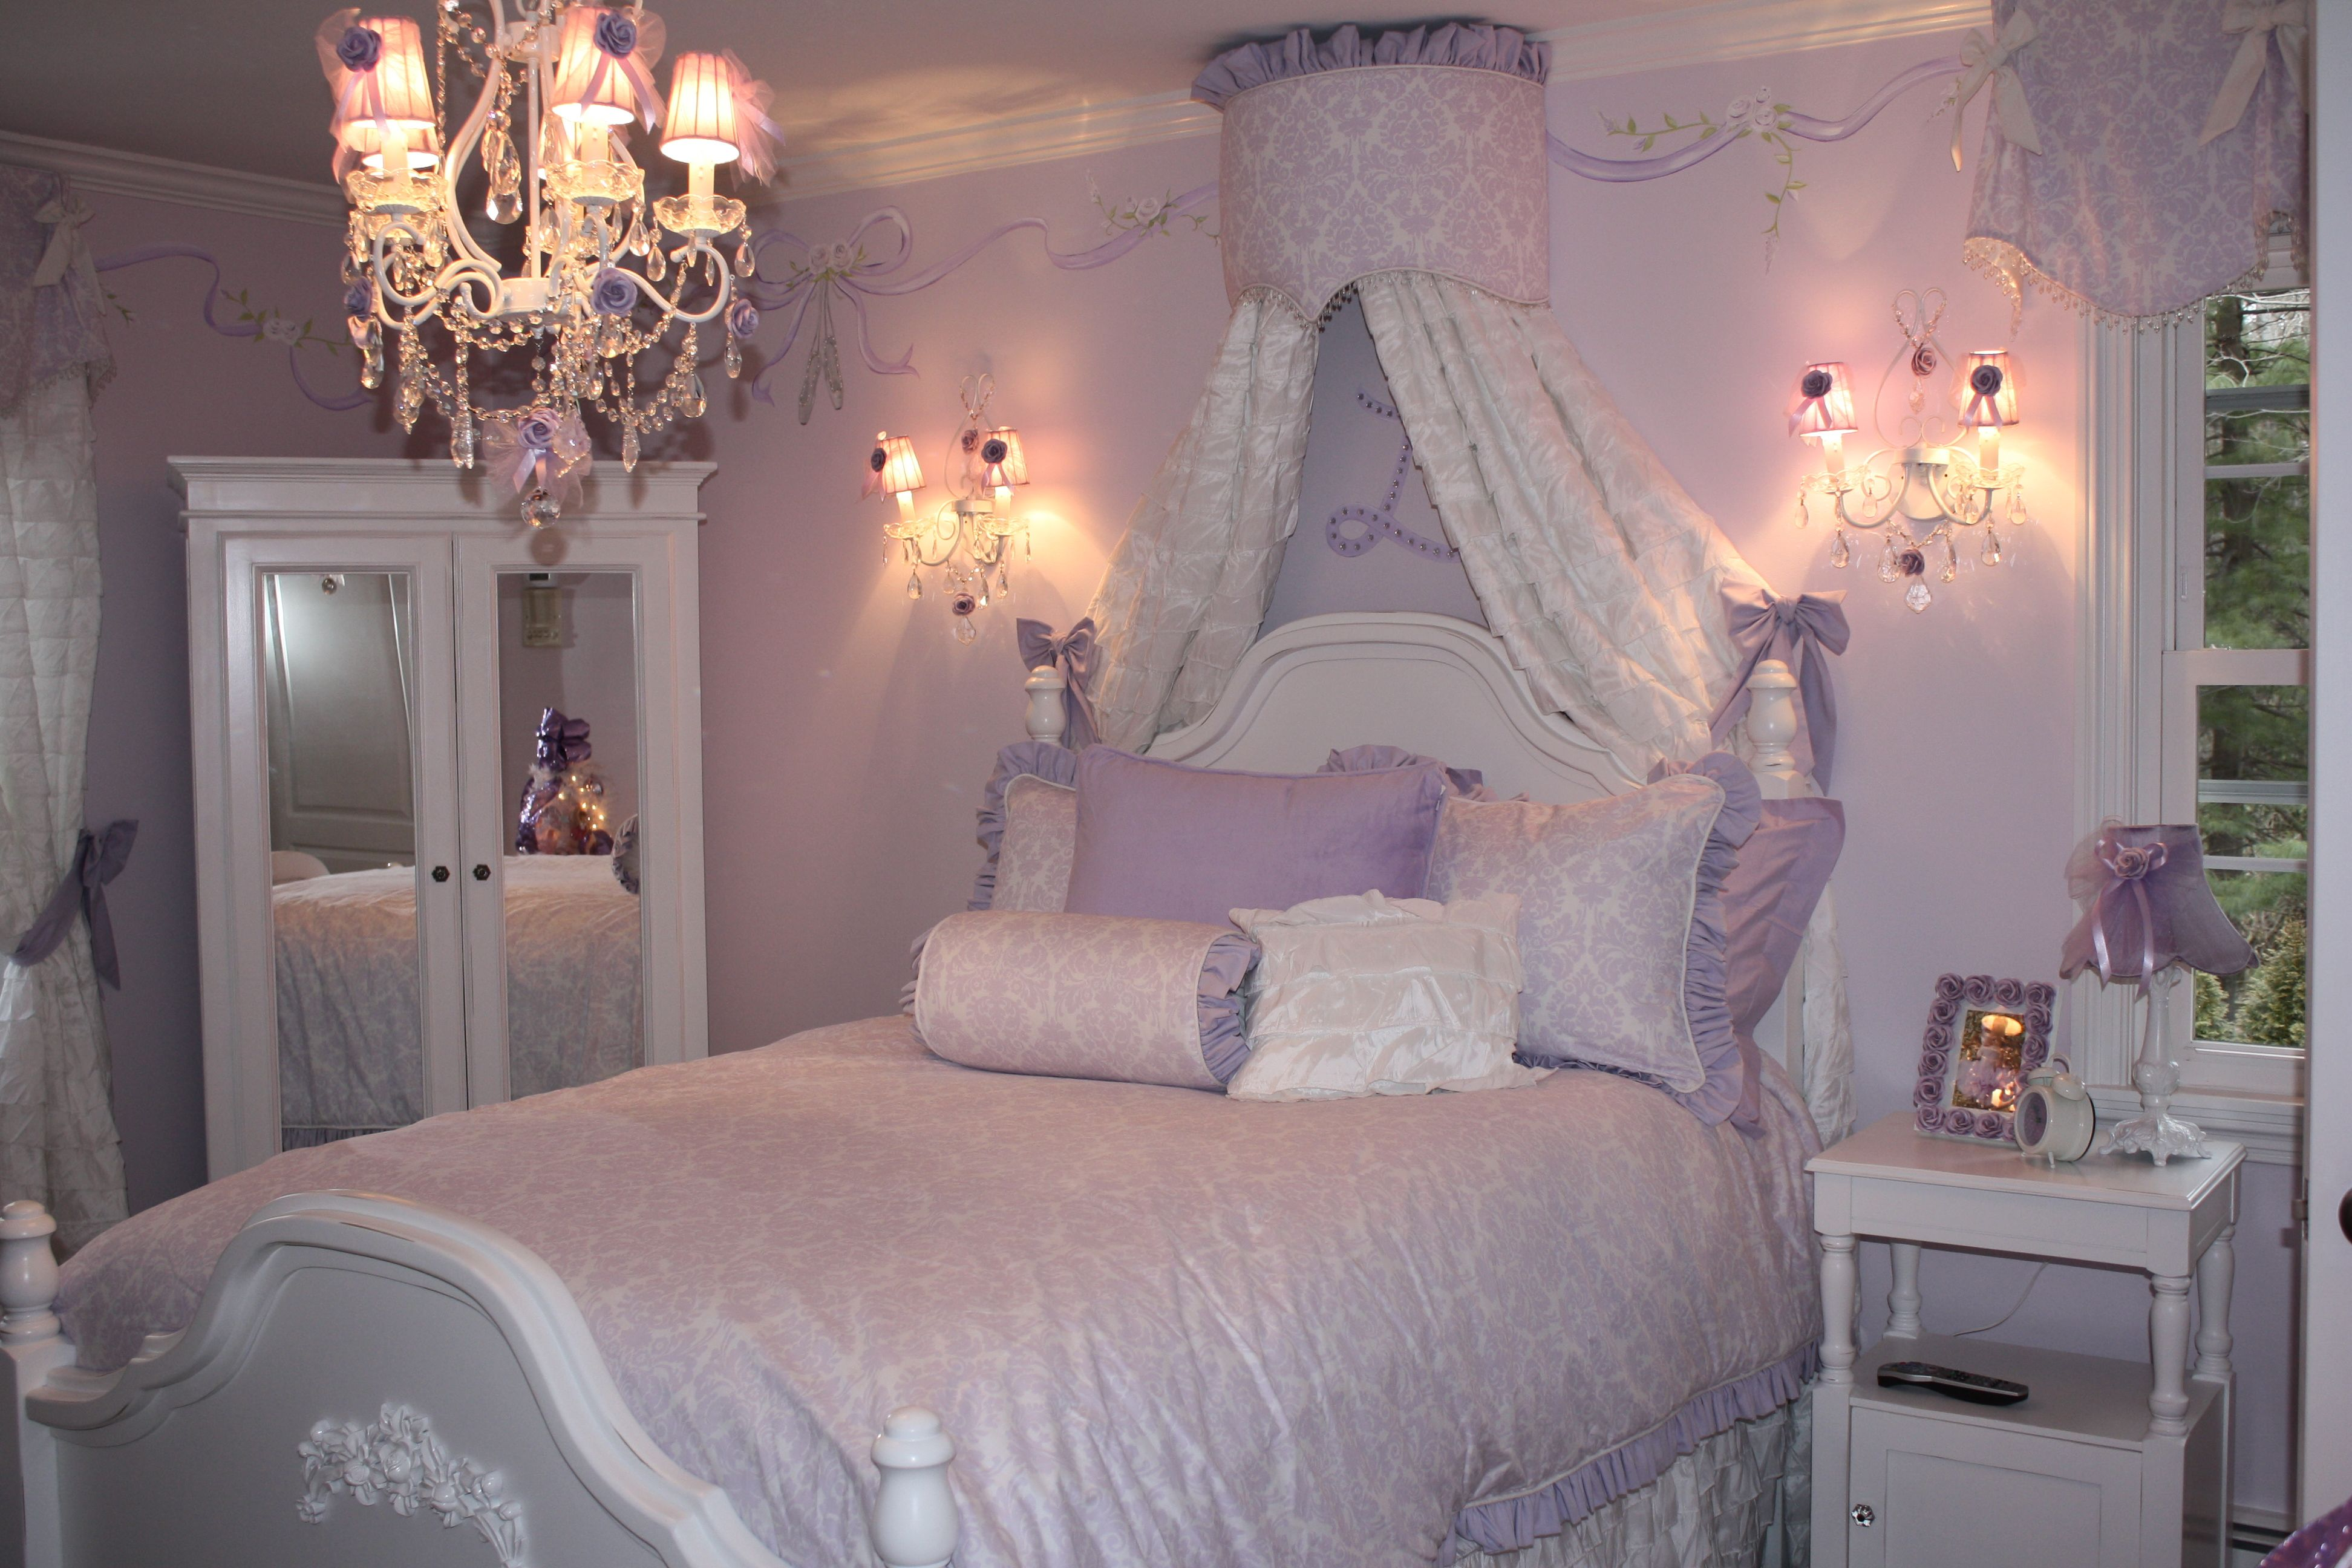 Elegant Ballerina Room Any Girl Would Want! - Project Nursery on Room For Girls  id=79271